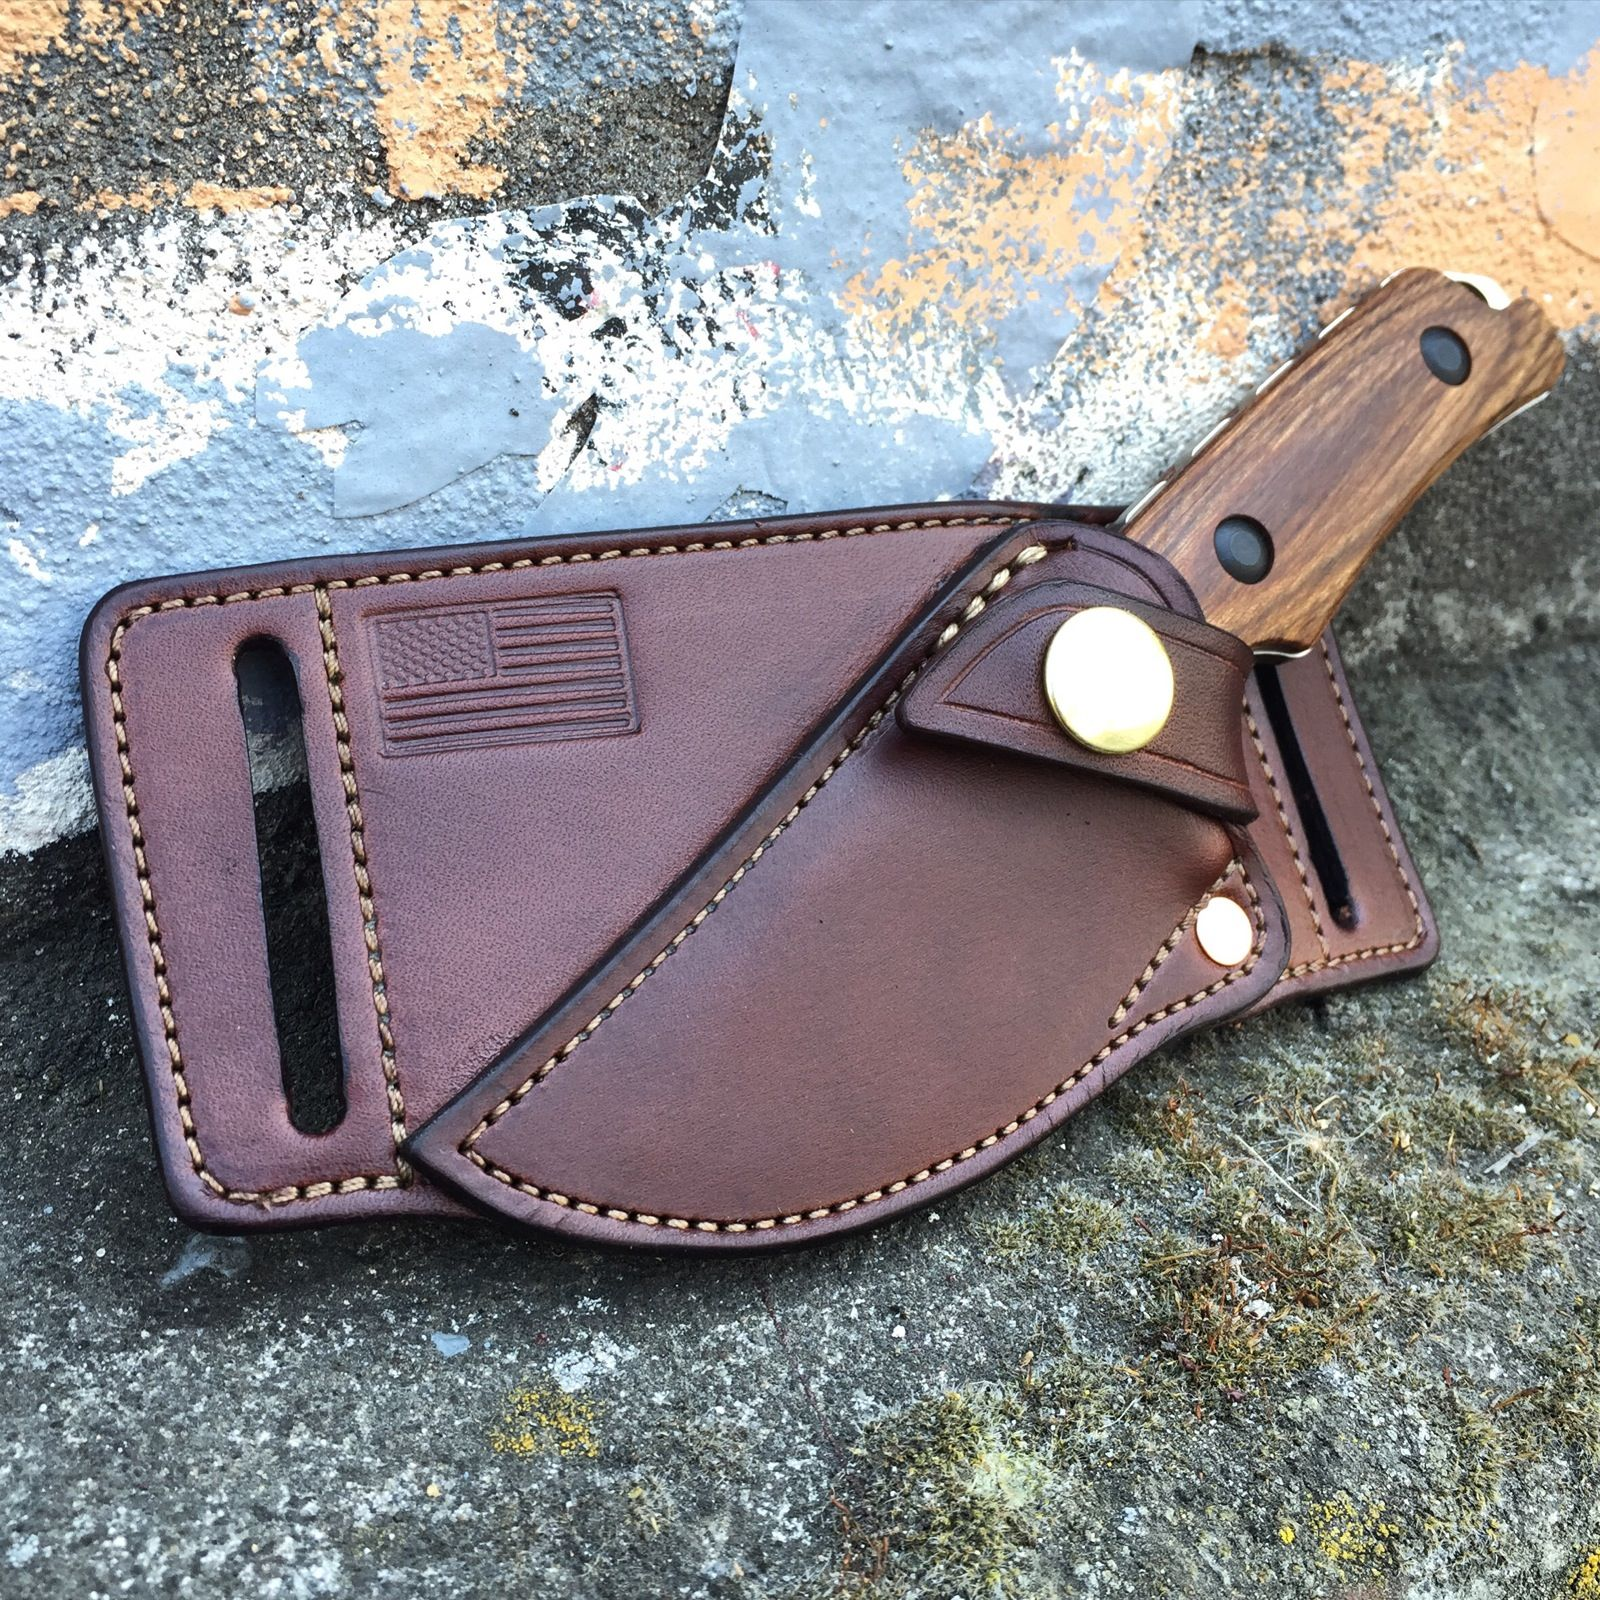 Cross-draw sheath for your favorite EDC fixed blade.